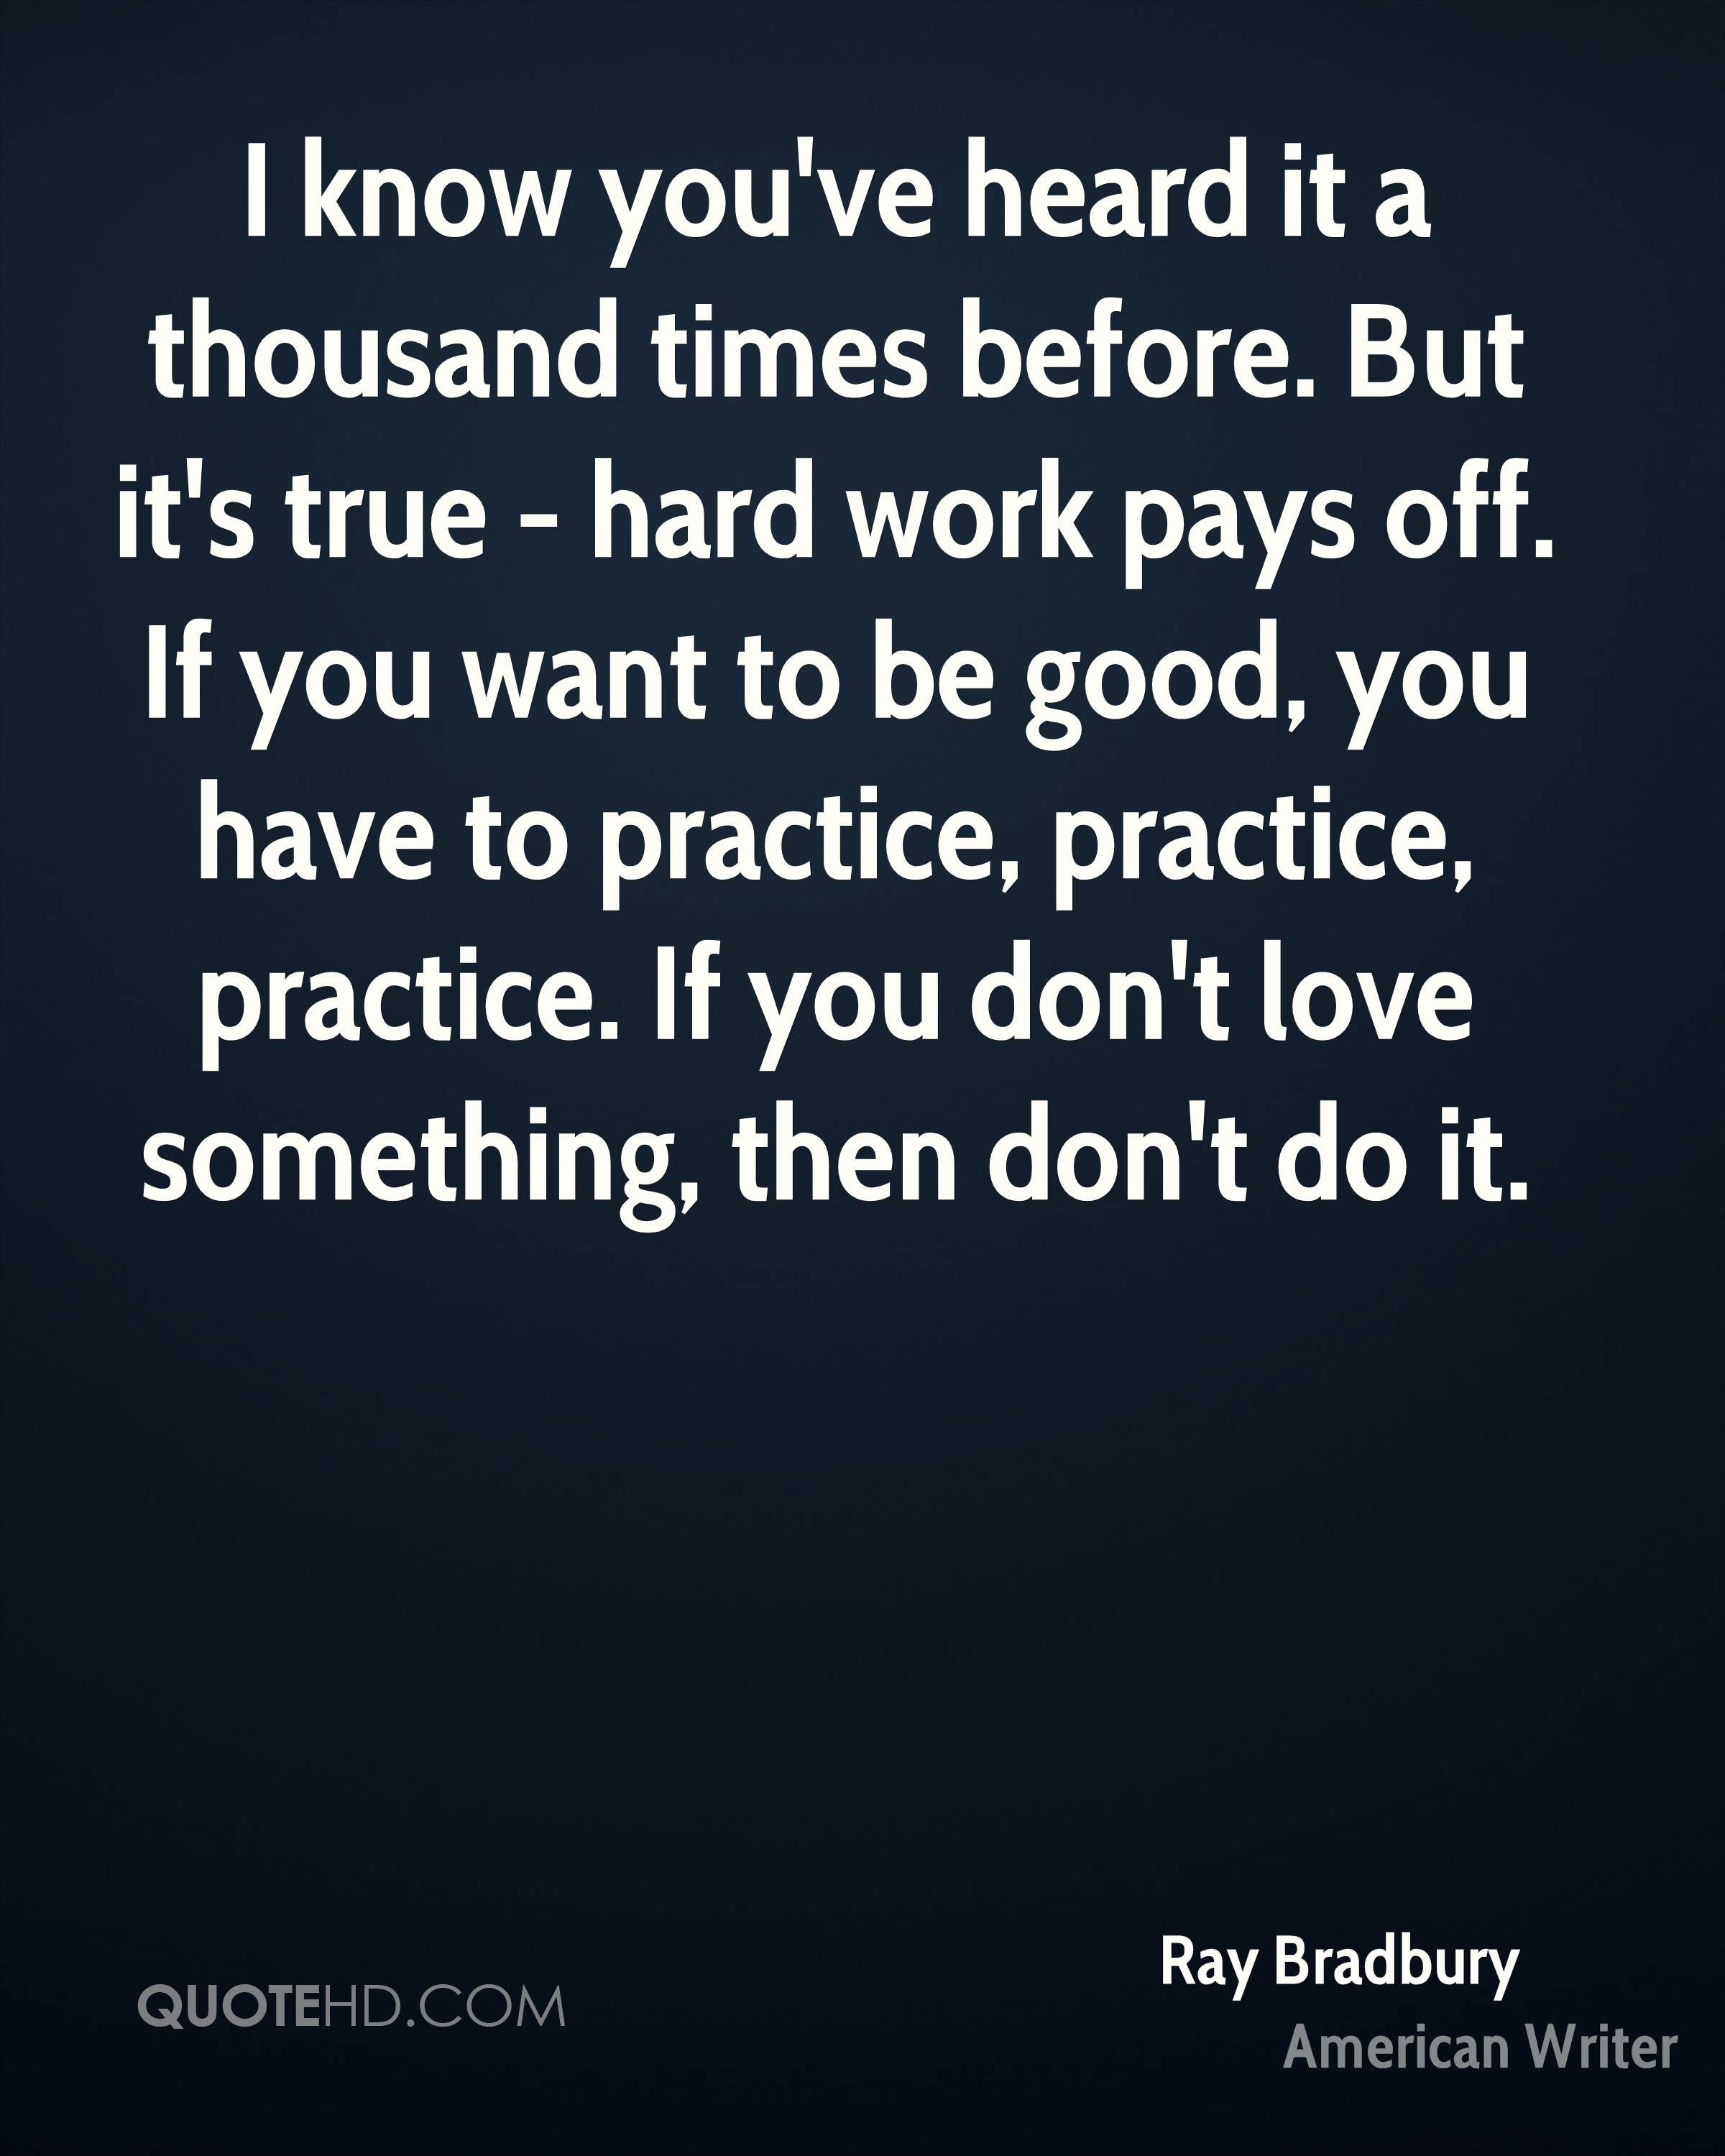 I know you've heard it a thousand times before. But it's true - hard work pays off. If you want to be good, you have to practice, practice, practice. If you don't love something, then don't do it.